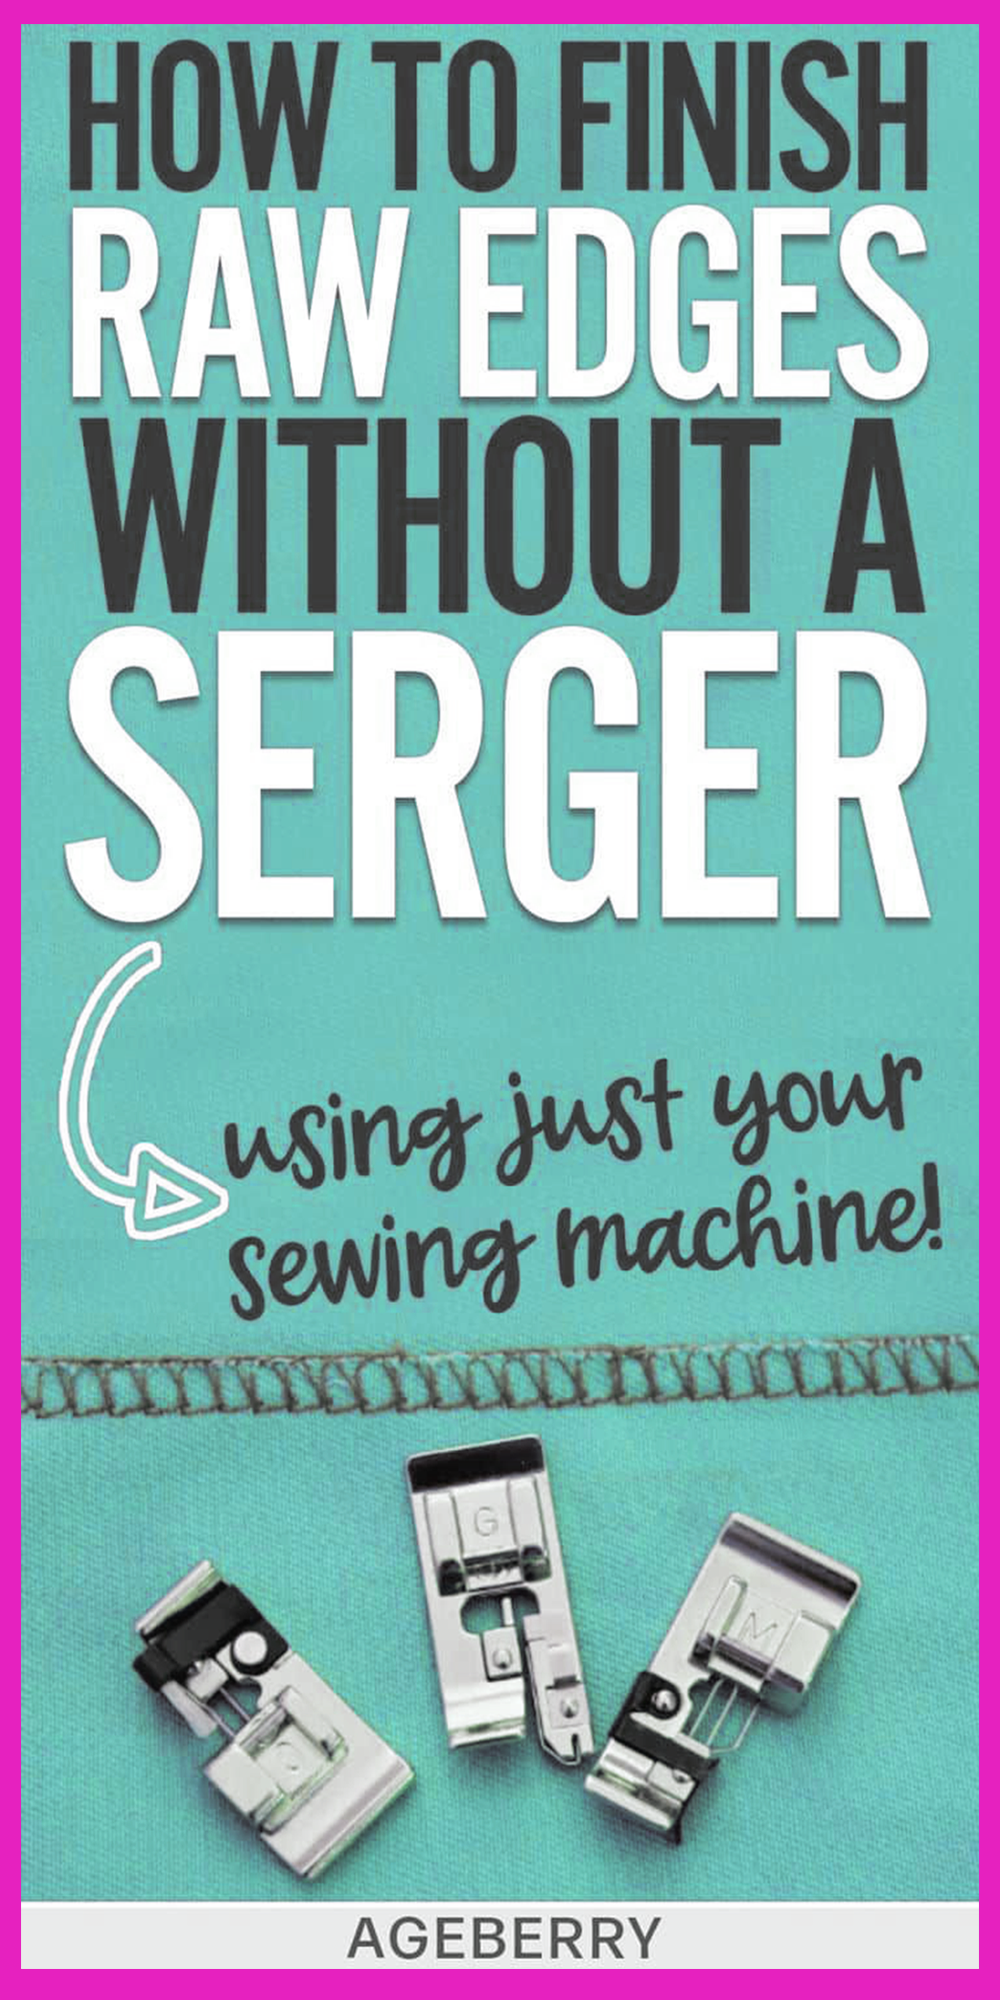 How to use an overlock foot / an overcast stitch for finishing seams without a serger